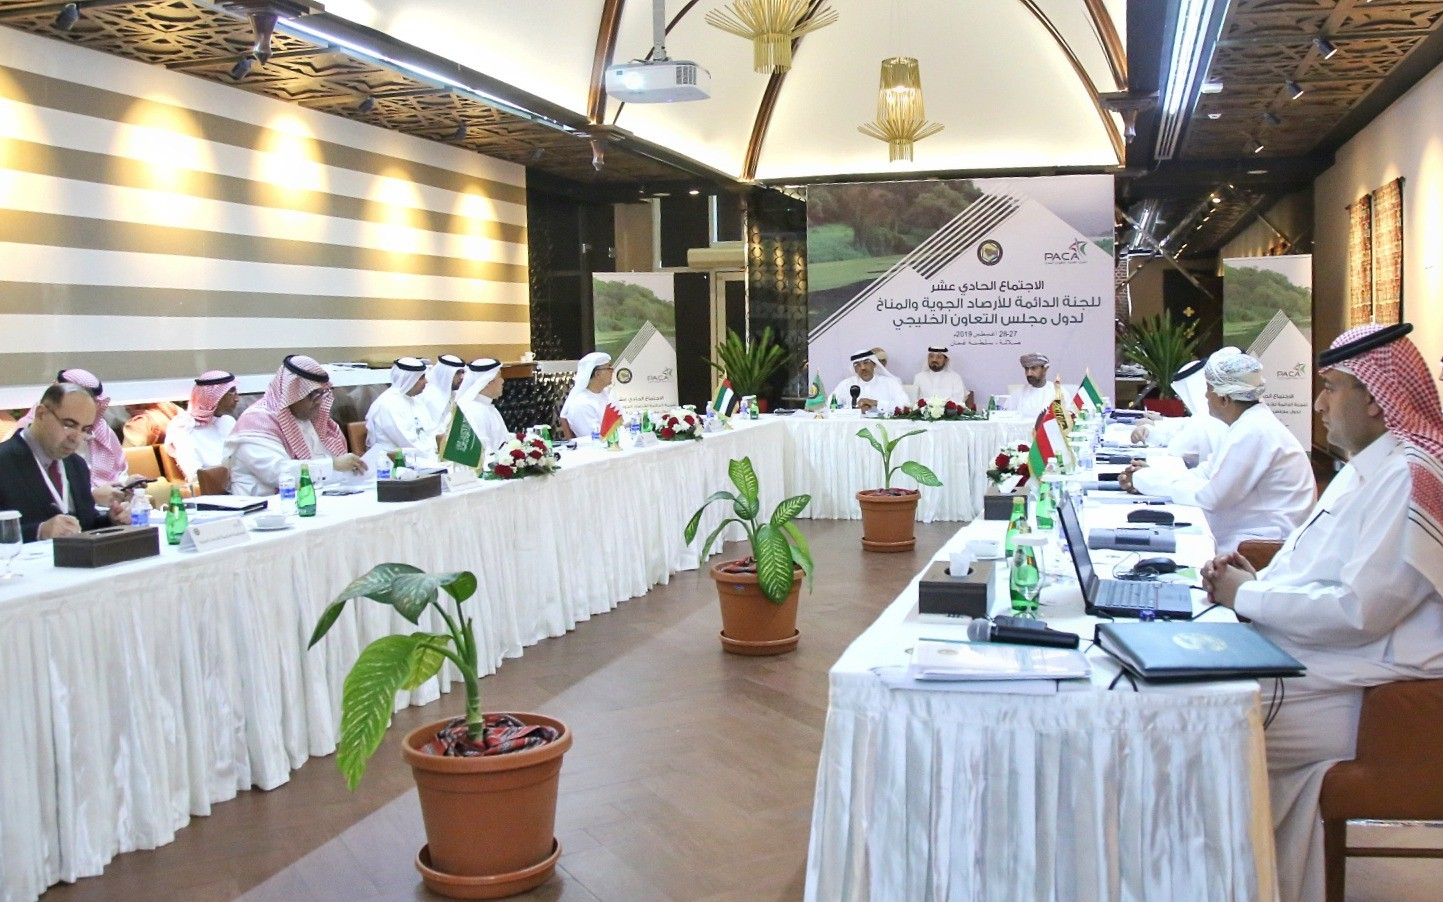 The 11th Meeting of the Cooperation Council for the Arab States of the Gulf  (GCC) Permanent Committee of Meteorology and Climate